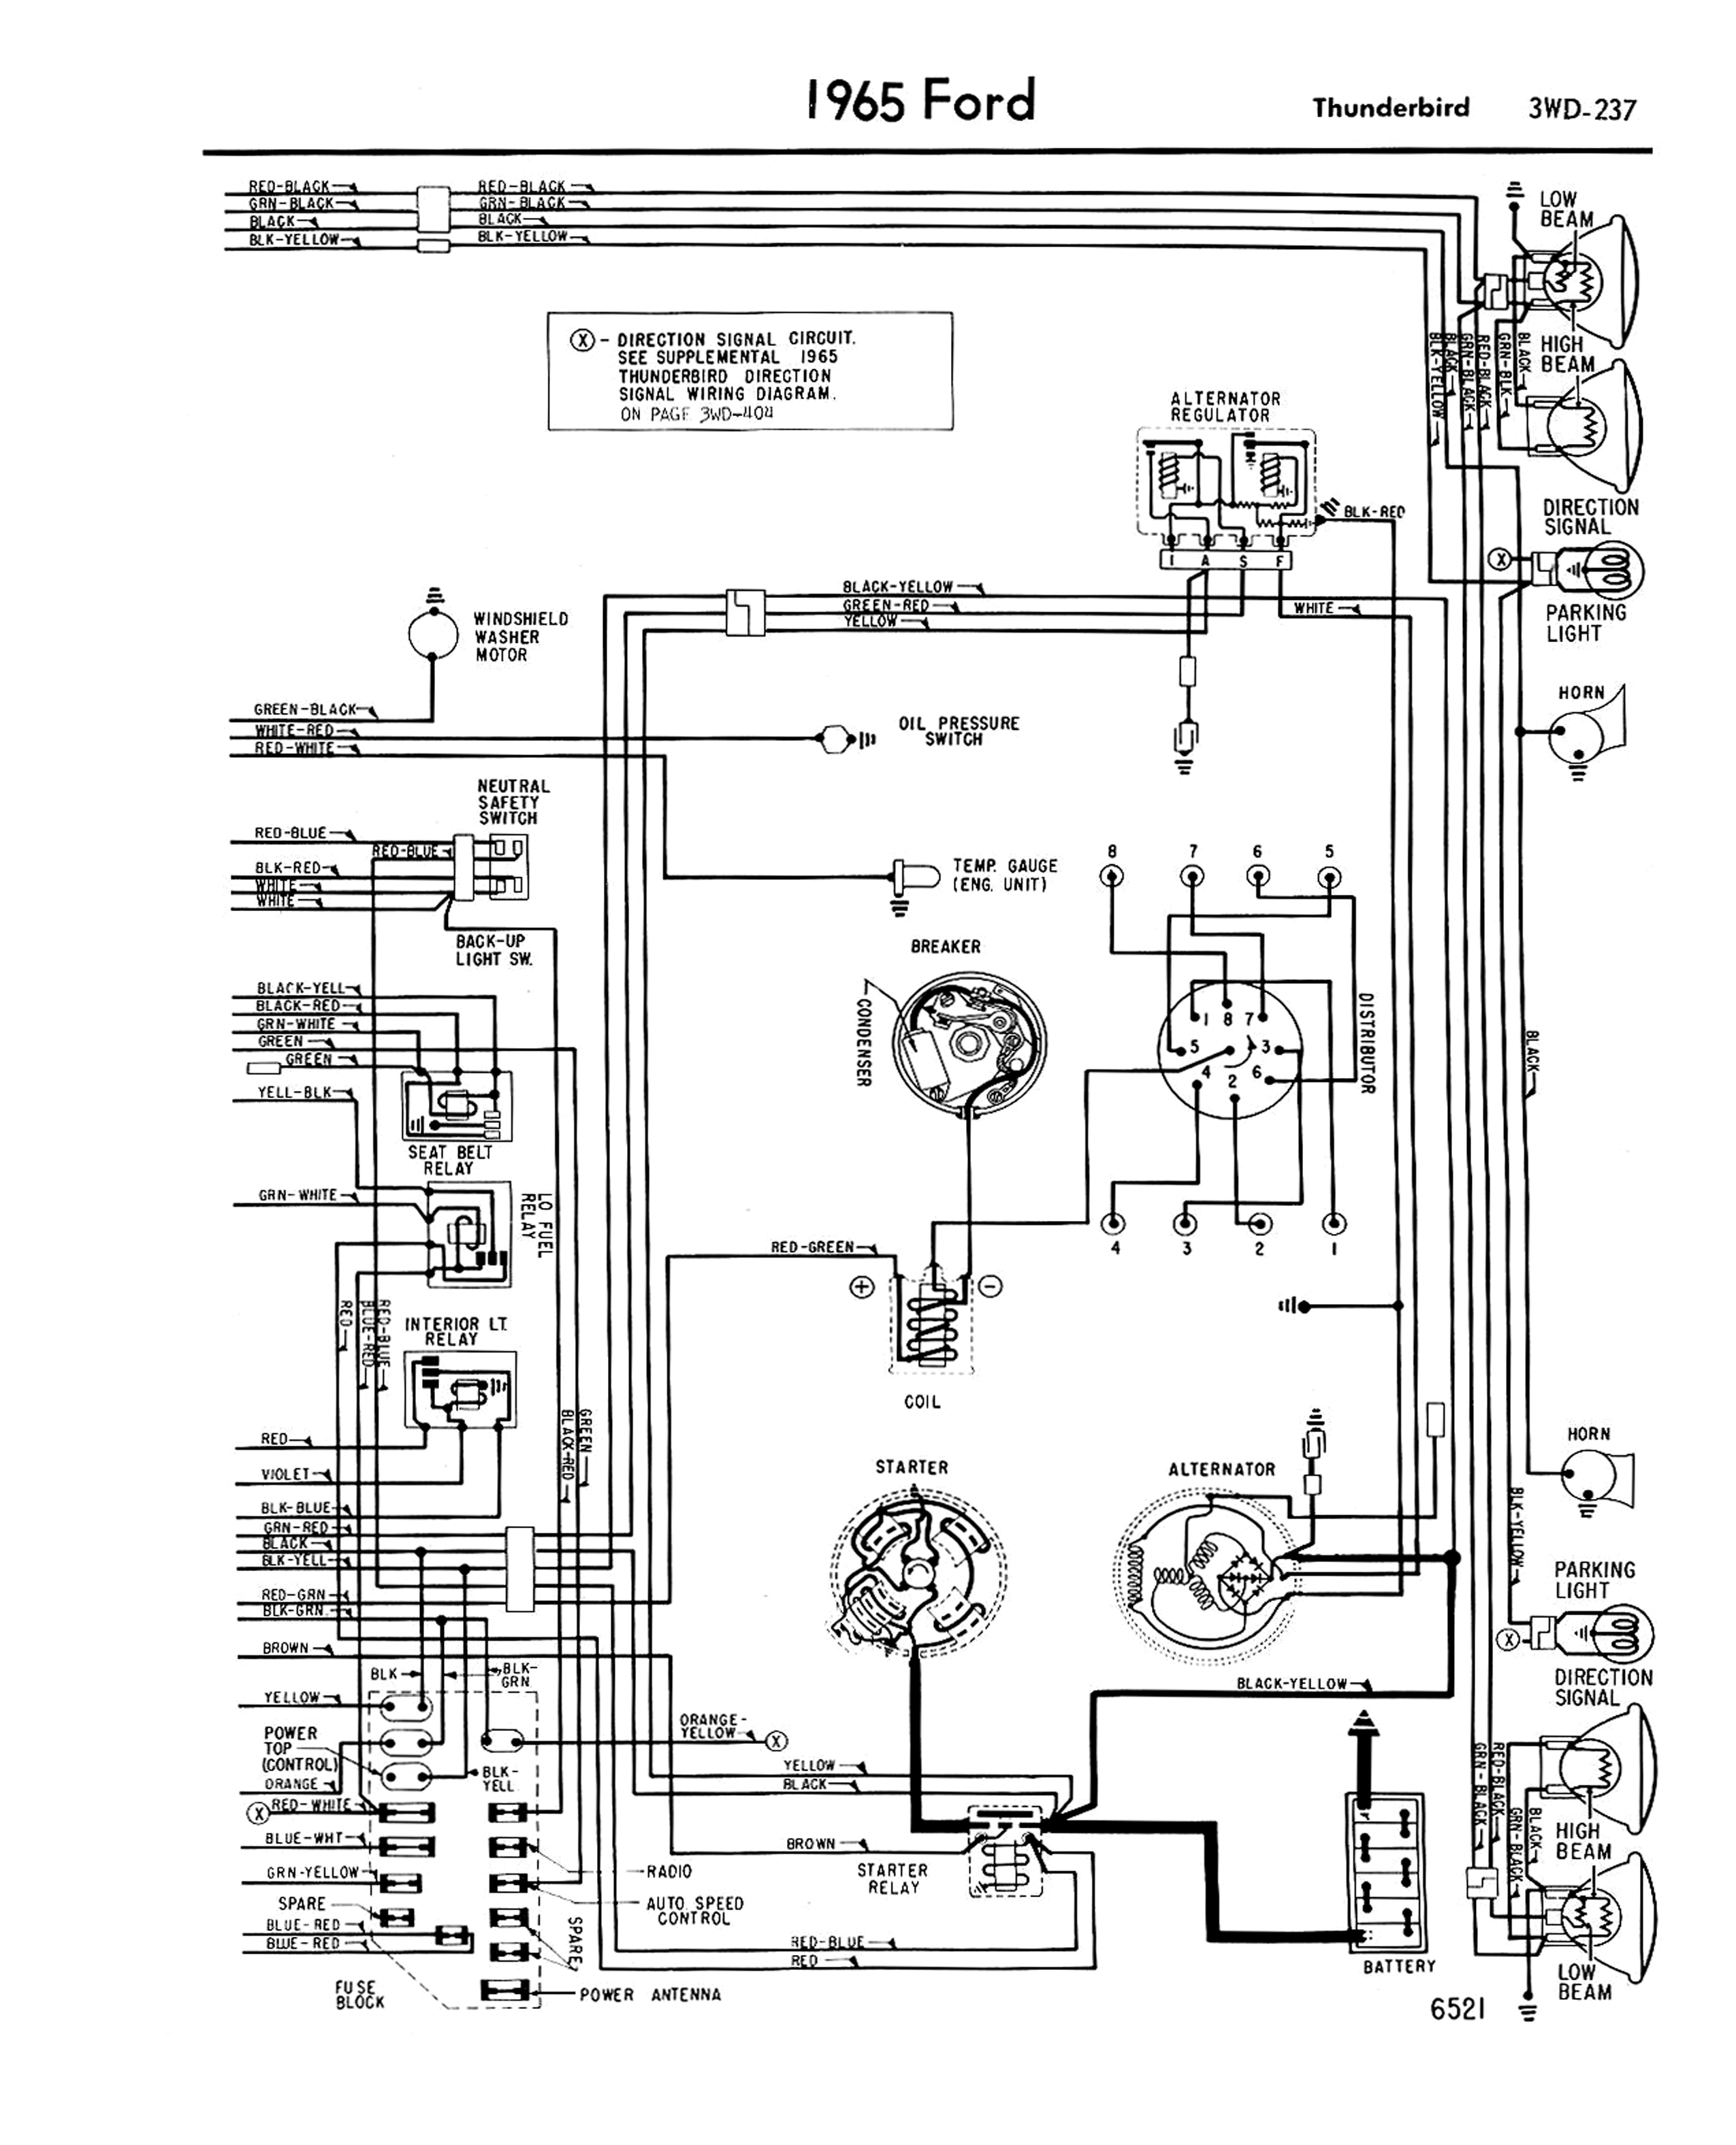 1958 68 ford electrical schematics rh squarebirds org 1965 ford thunderbird alternator wiring diagram 1965 thunderbird alternator wiring diagram